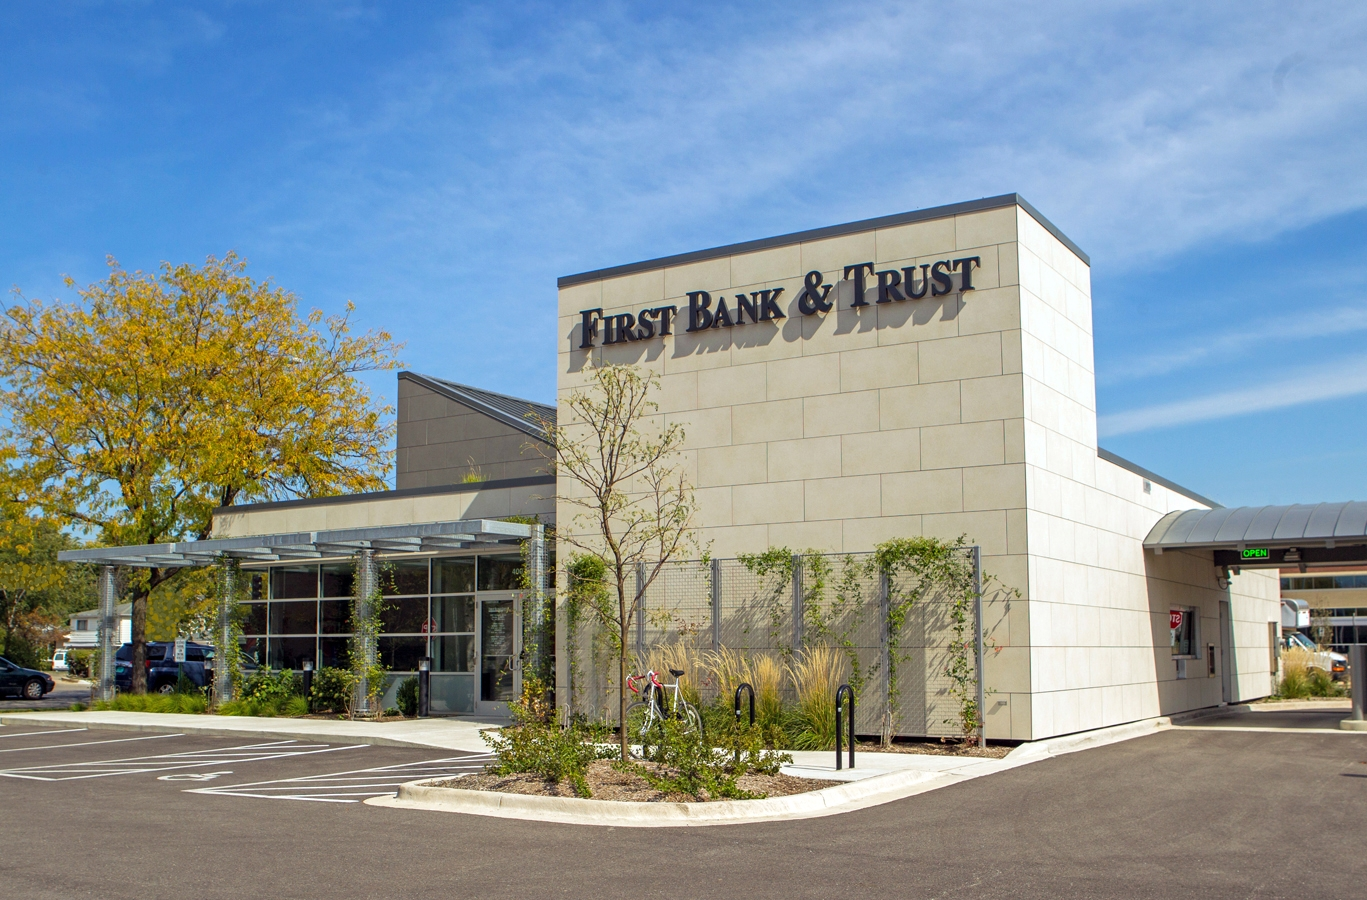 First Bank & Trust, Dempster Street Branch